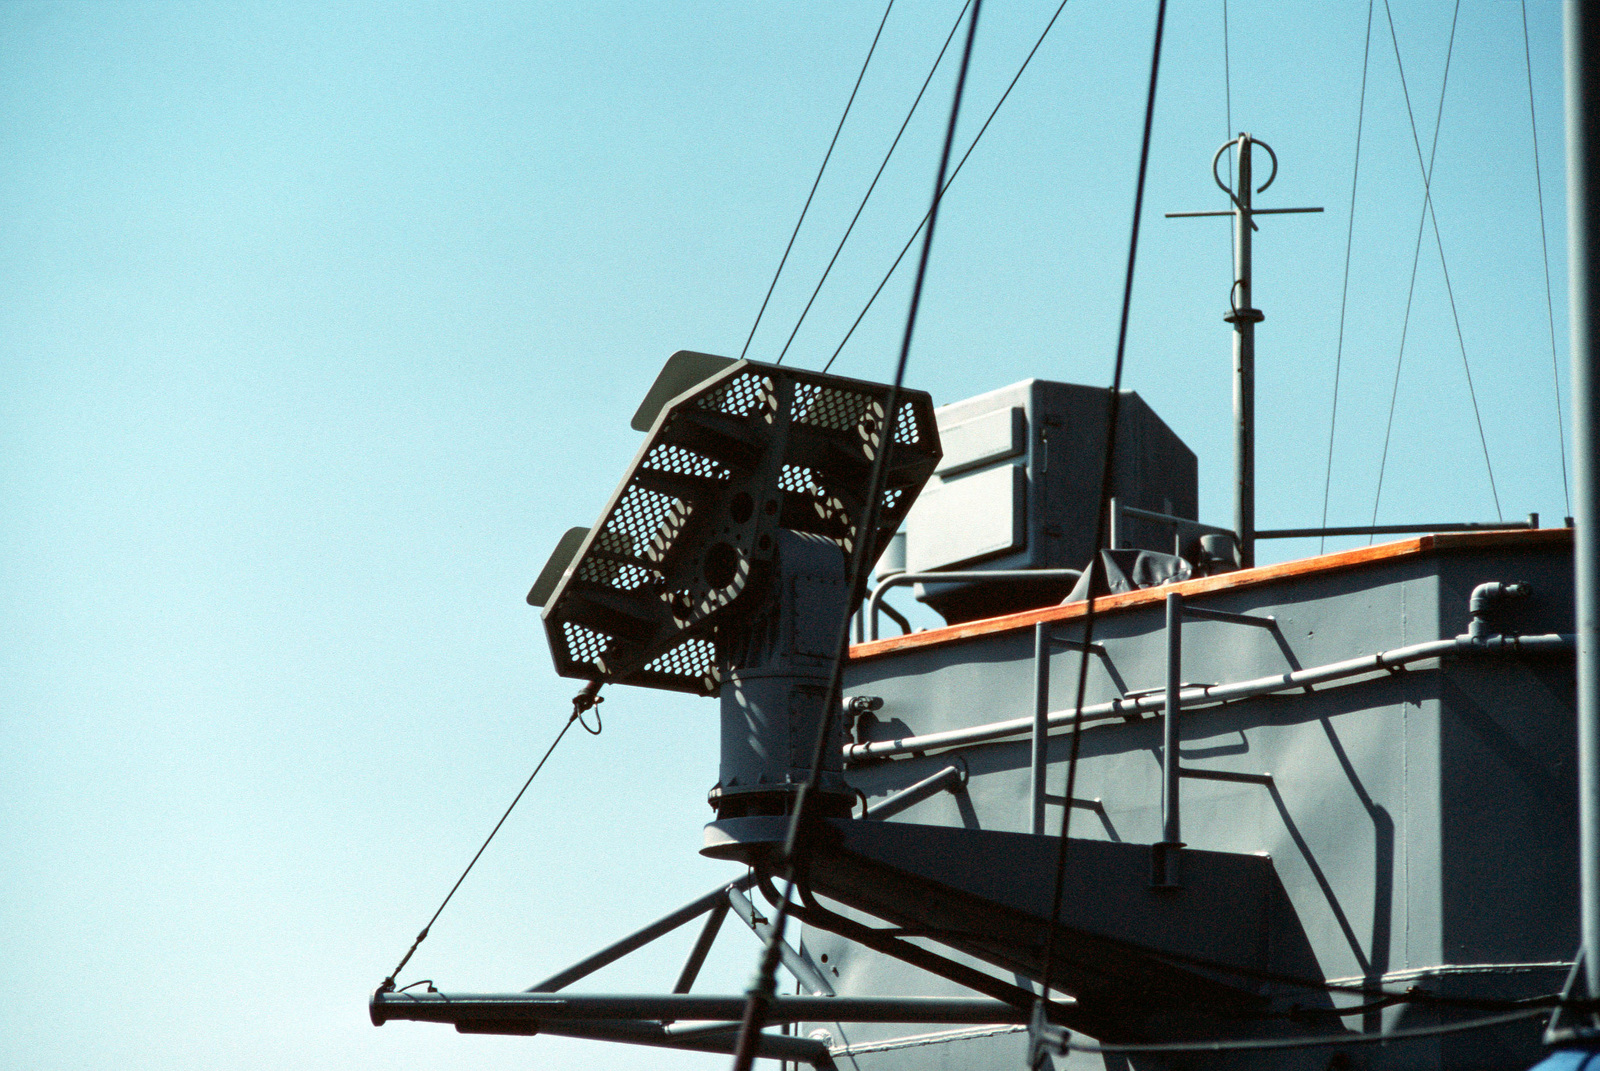 A view of the AS-3018/WSC-1 satellite receiving antenna mounted on top of the bridge of the guided missile destroyer USS RICHARD E. BYRD (DDG 23)